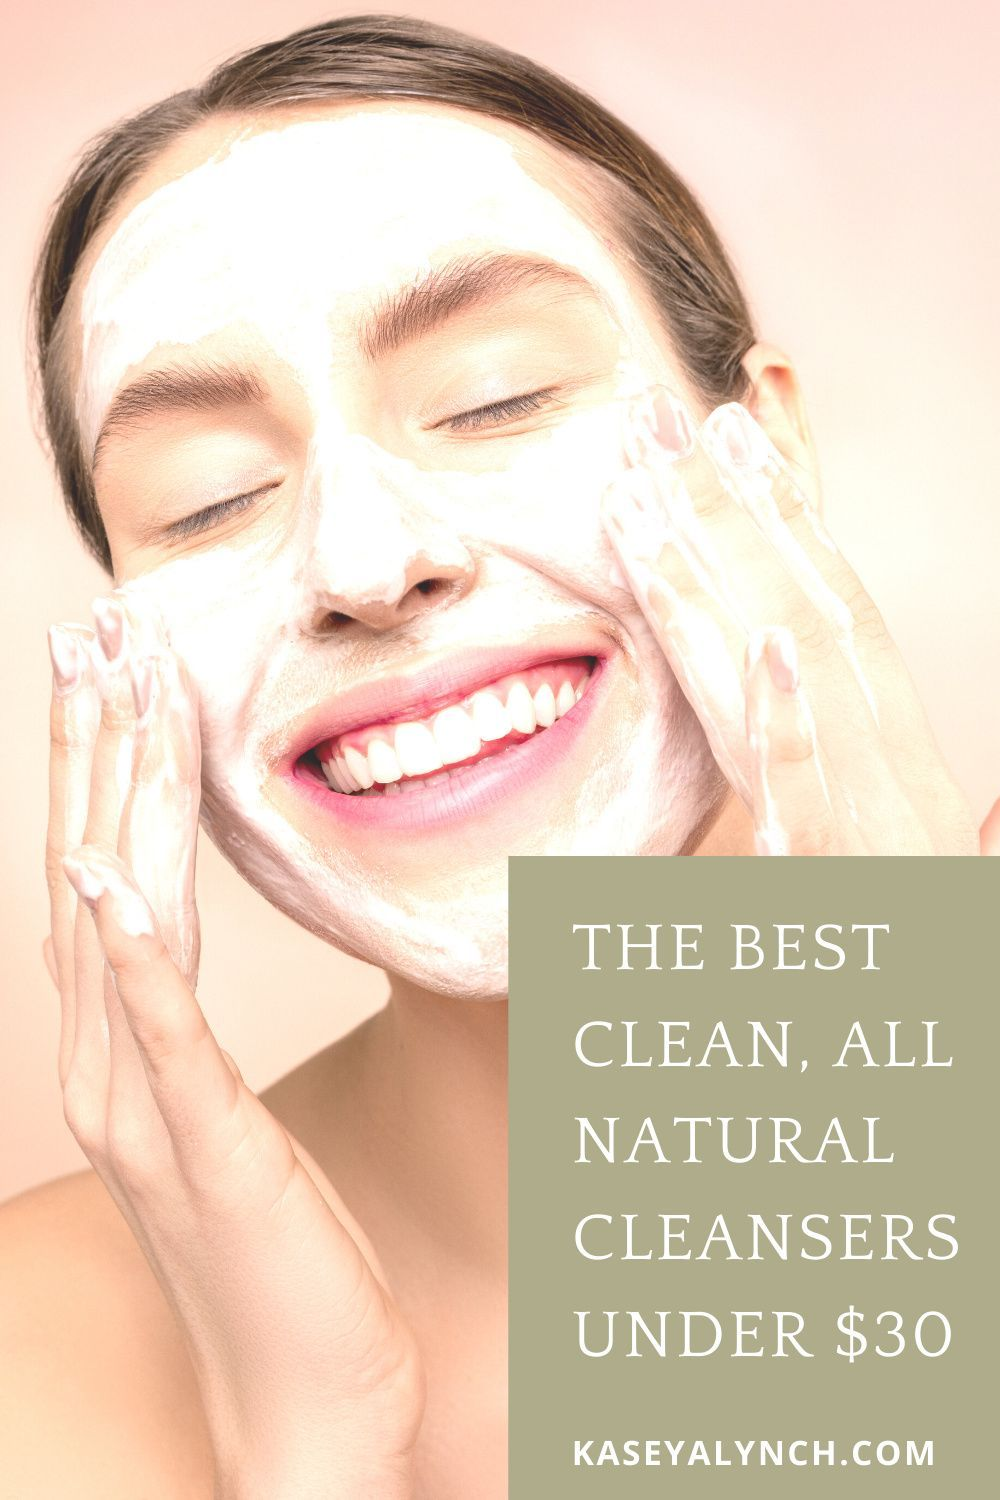 Clean skincare products don't have to cost a lot. Your skin deserves the best, which is why I compiled the best all natural cleansers under $30. Happy shopping!   #cleanskincare #naturalskincare #organicskincare #cleancleansers #organiccleansers #organicbeauty #allnaturalskincare #cleanbeauty #organicbeauty #cheapcleansers #affordableskincare